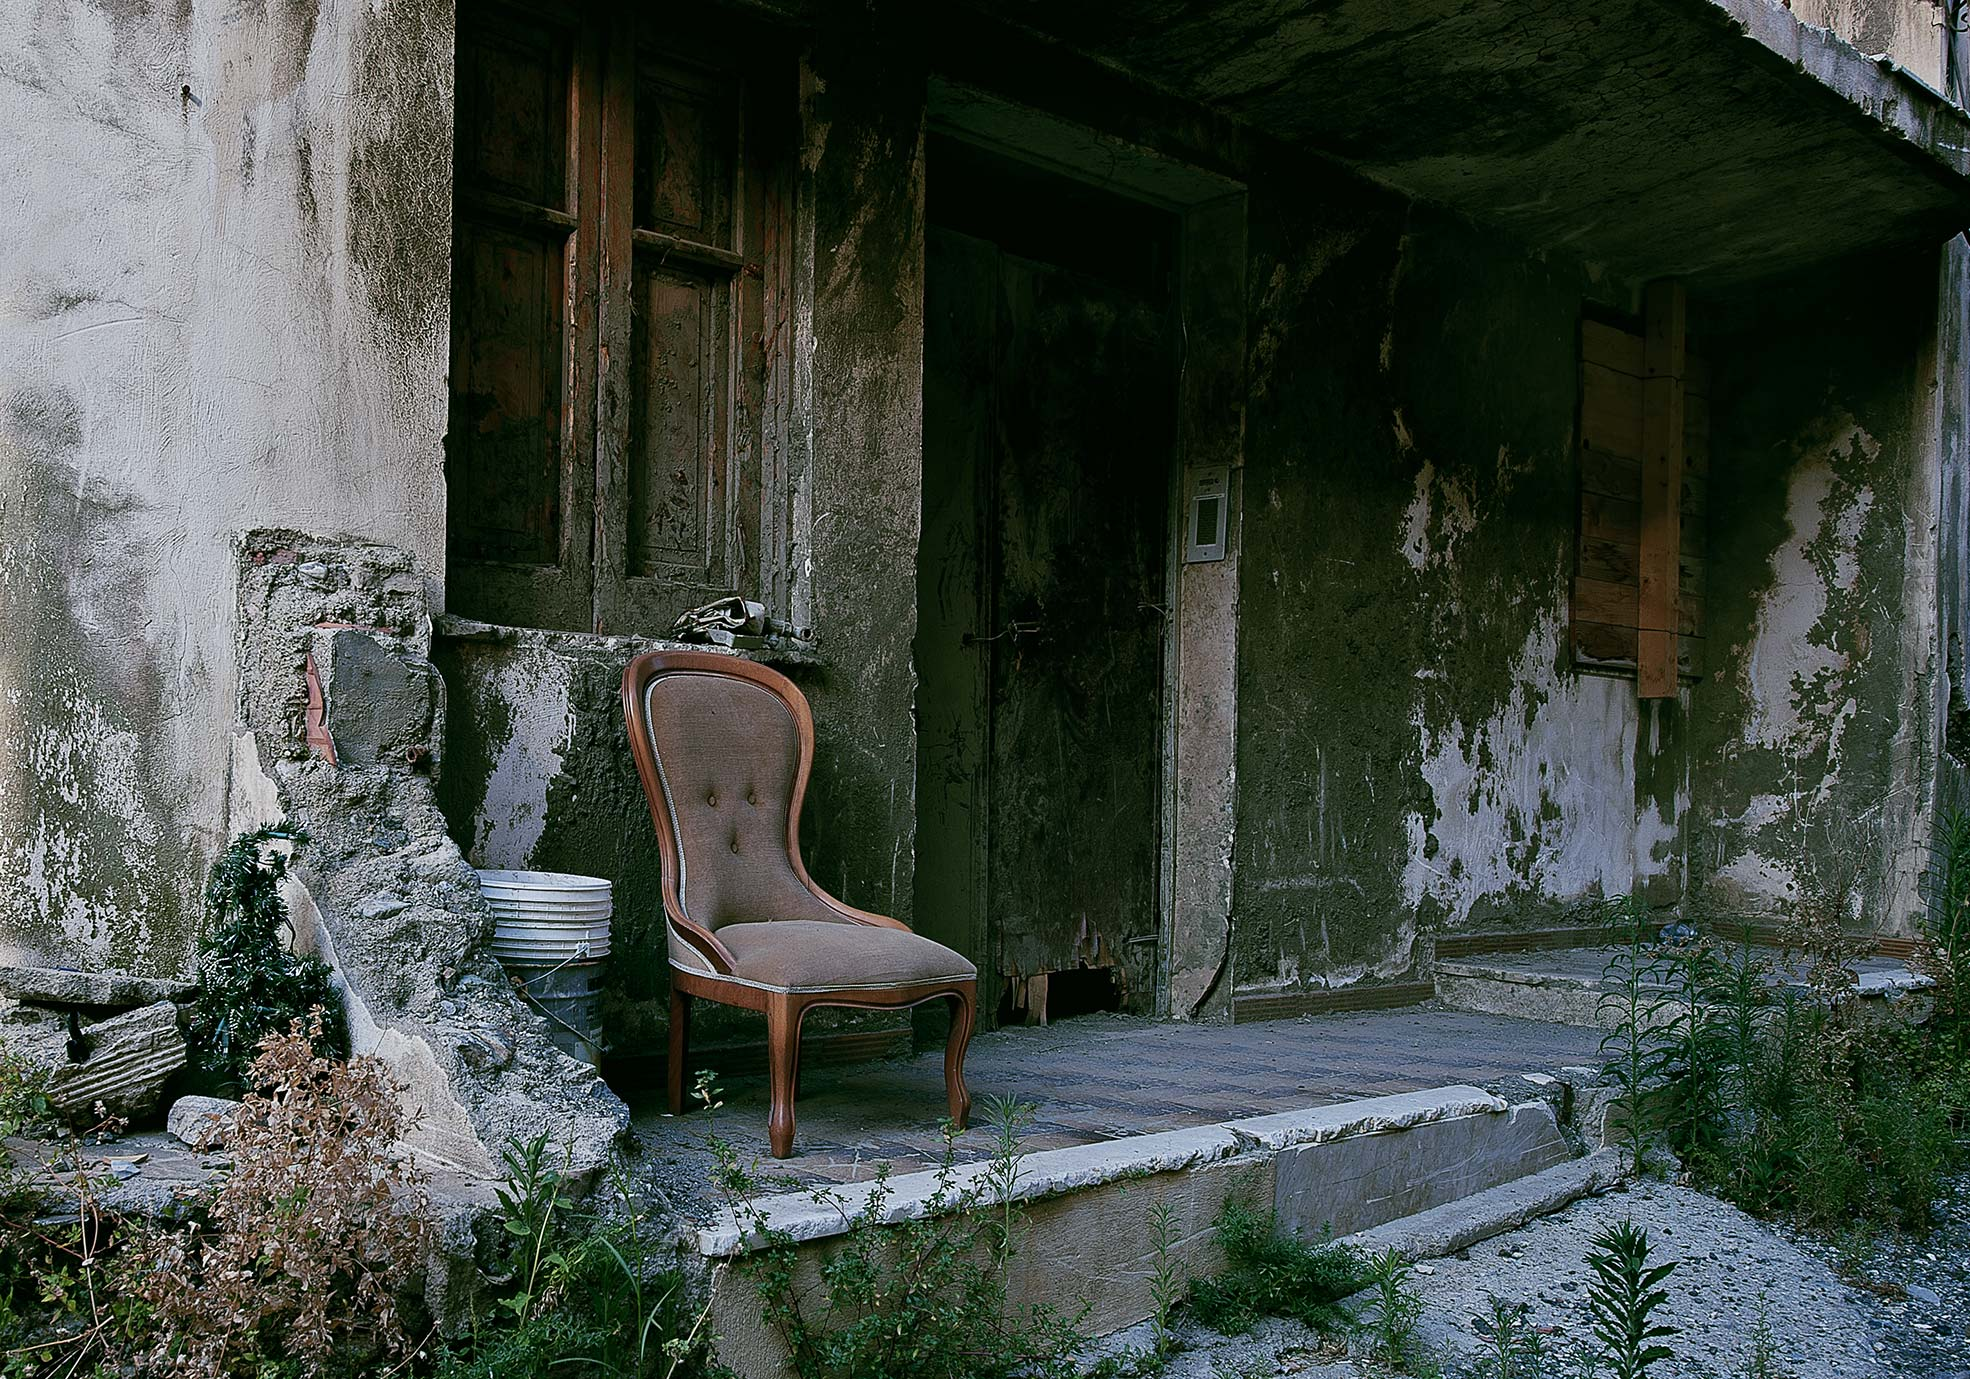 An armchair in a ruined house one of the trail of Giampilieri after the flood Photographer Maria Teresa Furnari